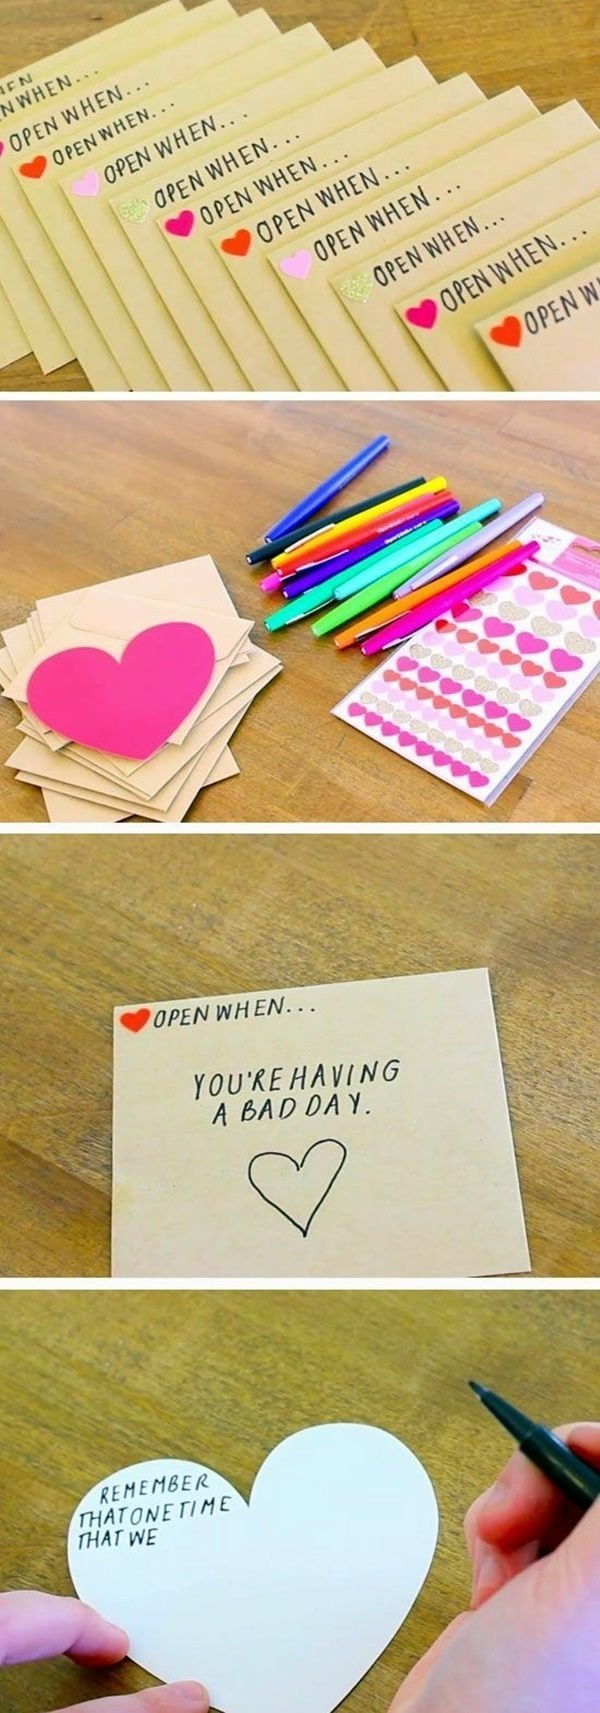 10 Trendy Cute Homemade Valentines Day Ideas For Your Boyfriend 101 homemade valentines day ideas for him thatre really cute 4 2020